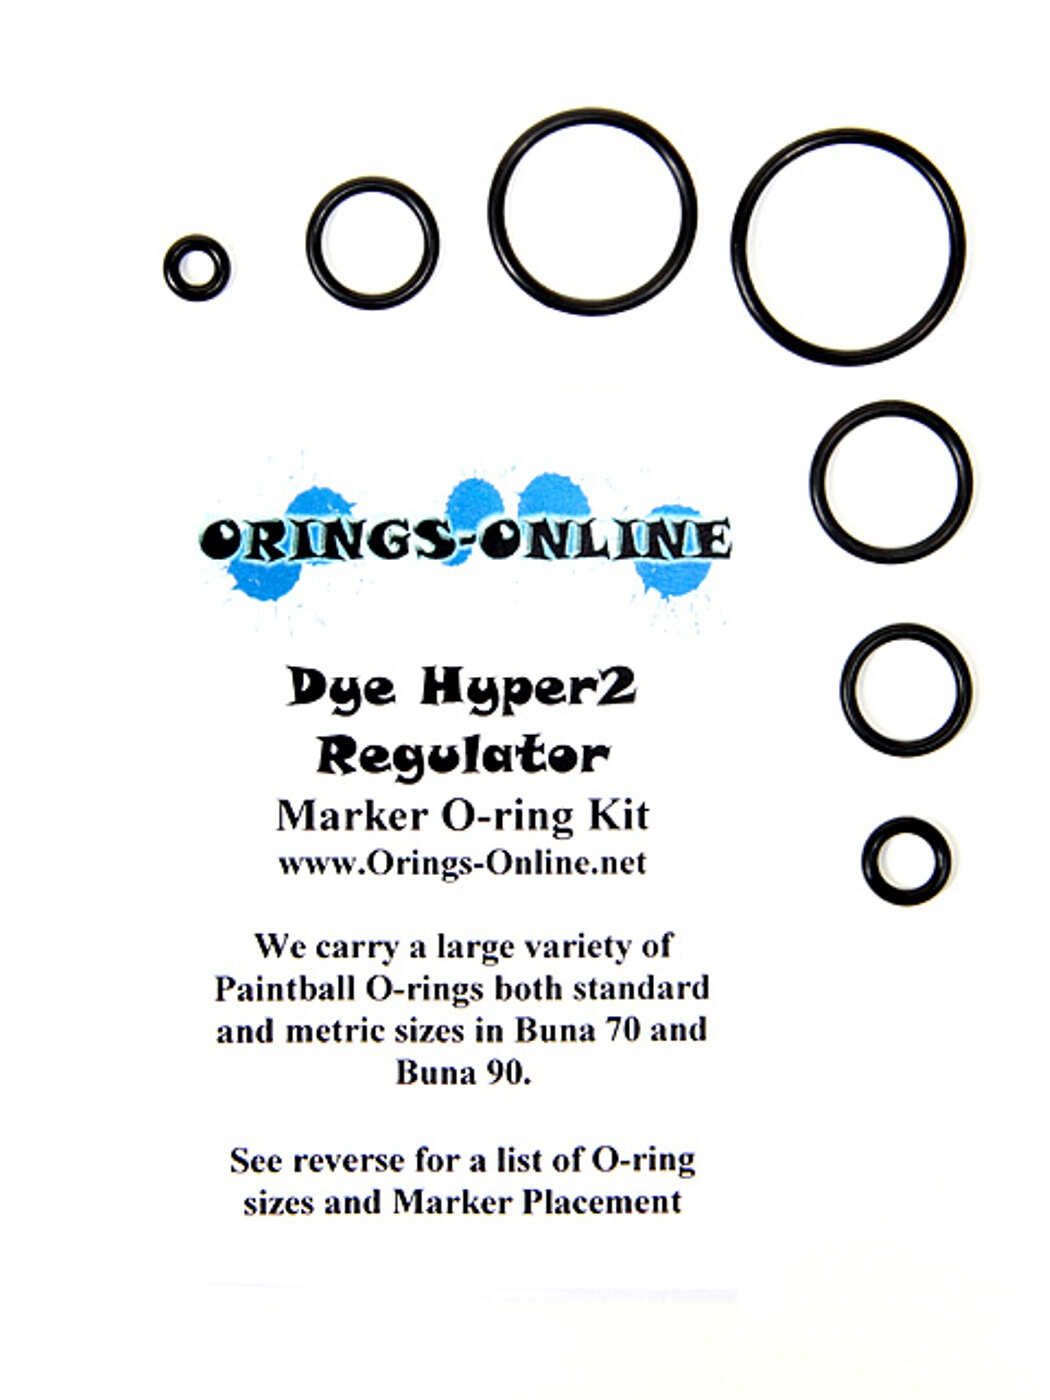 DYE Hyper 2 Regulator O-ring Kit